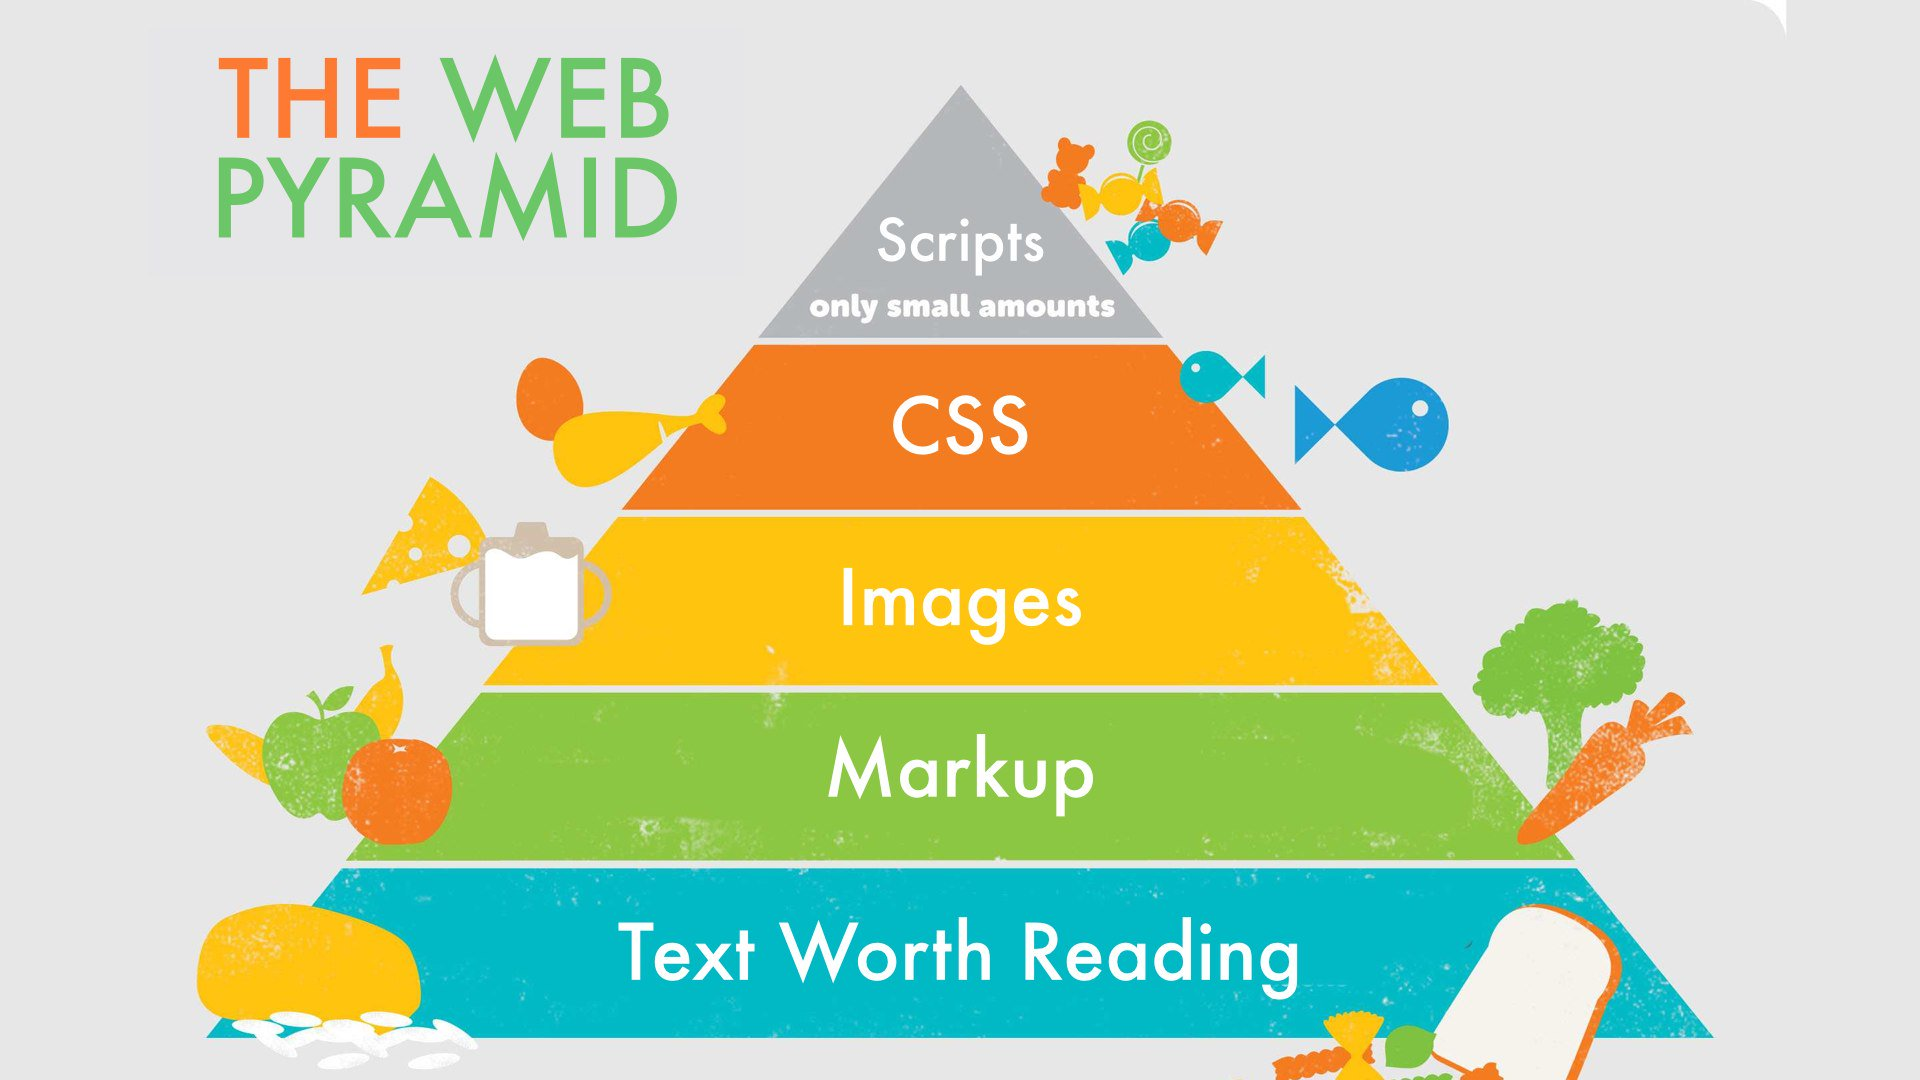 Web Pyramid via @pinboard on Twitter